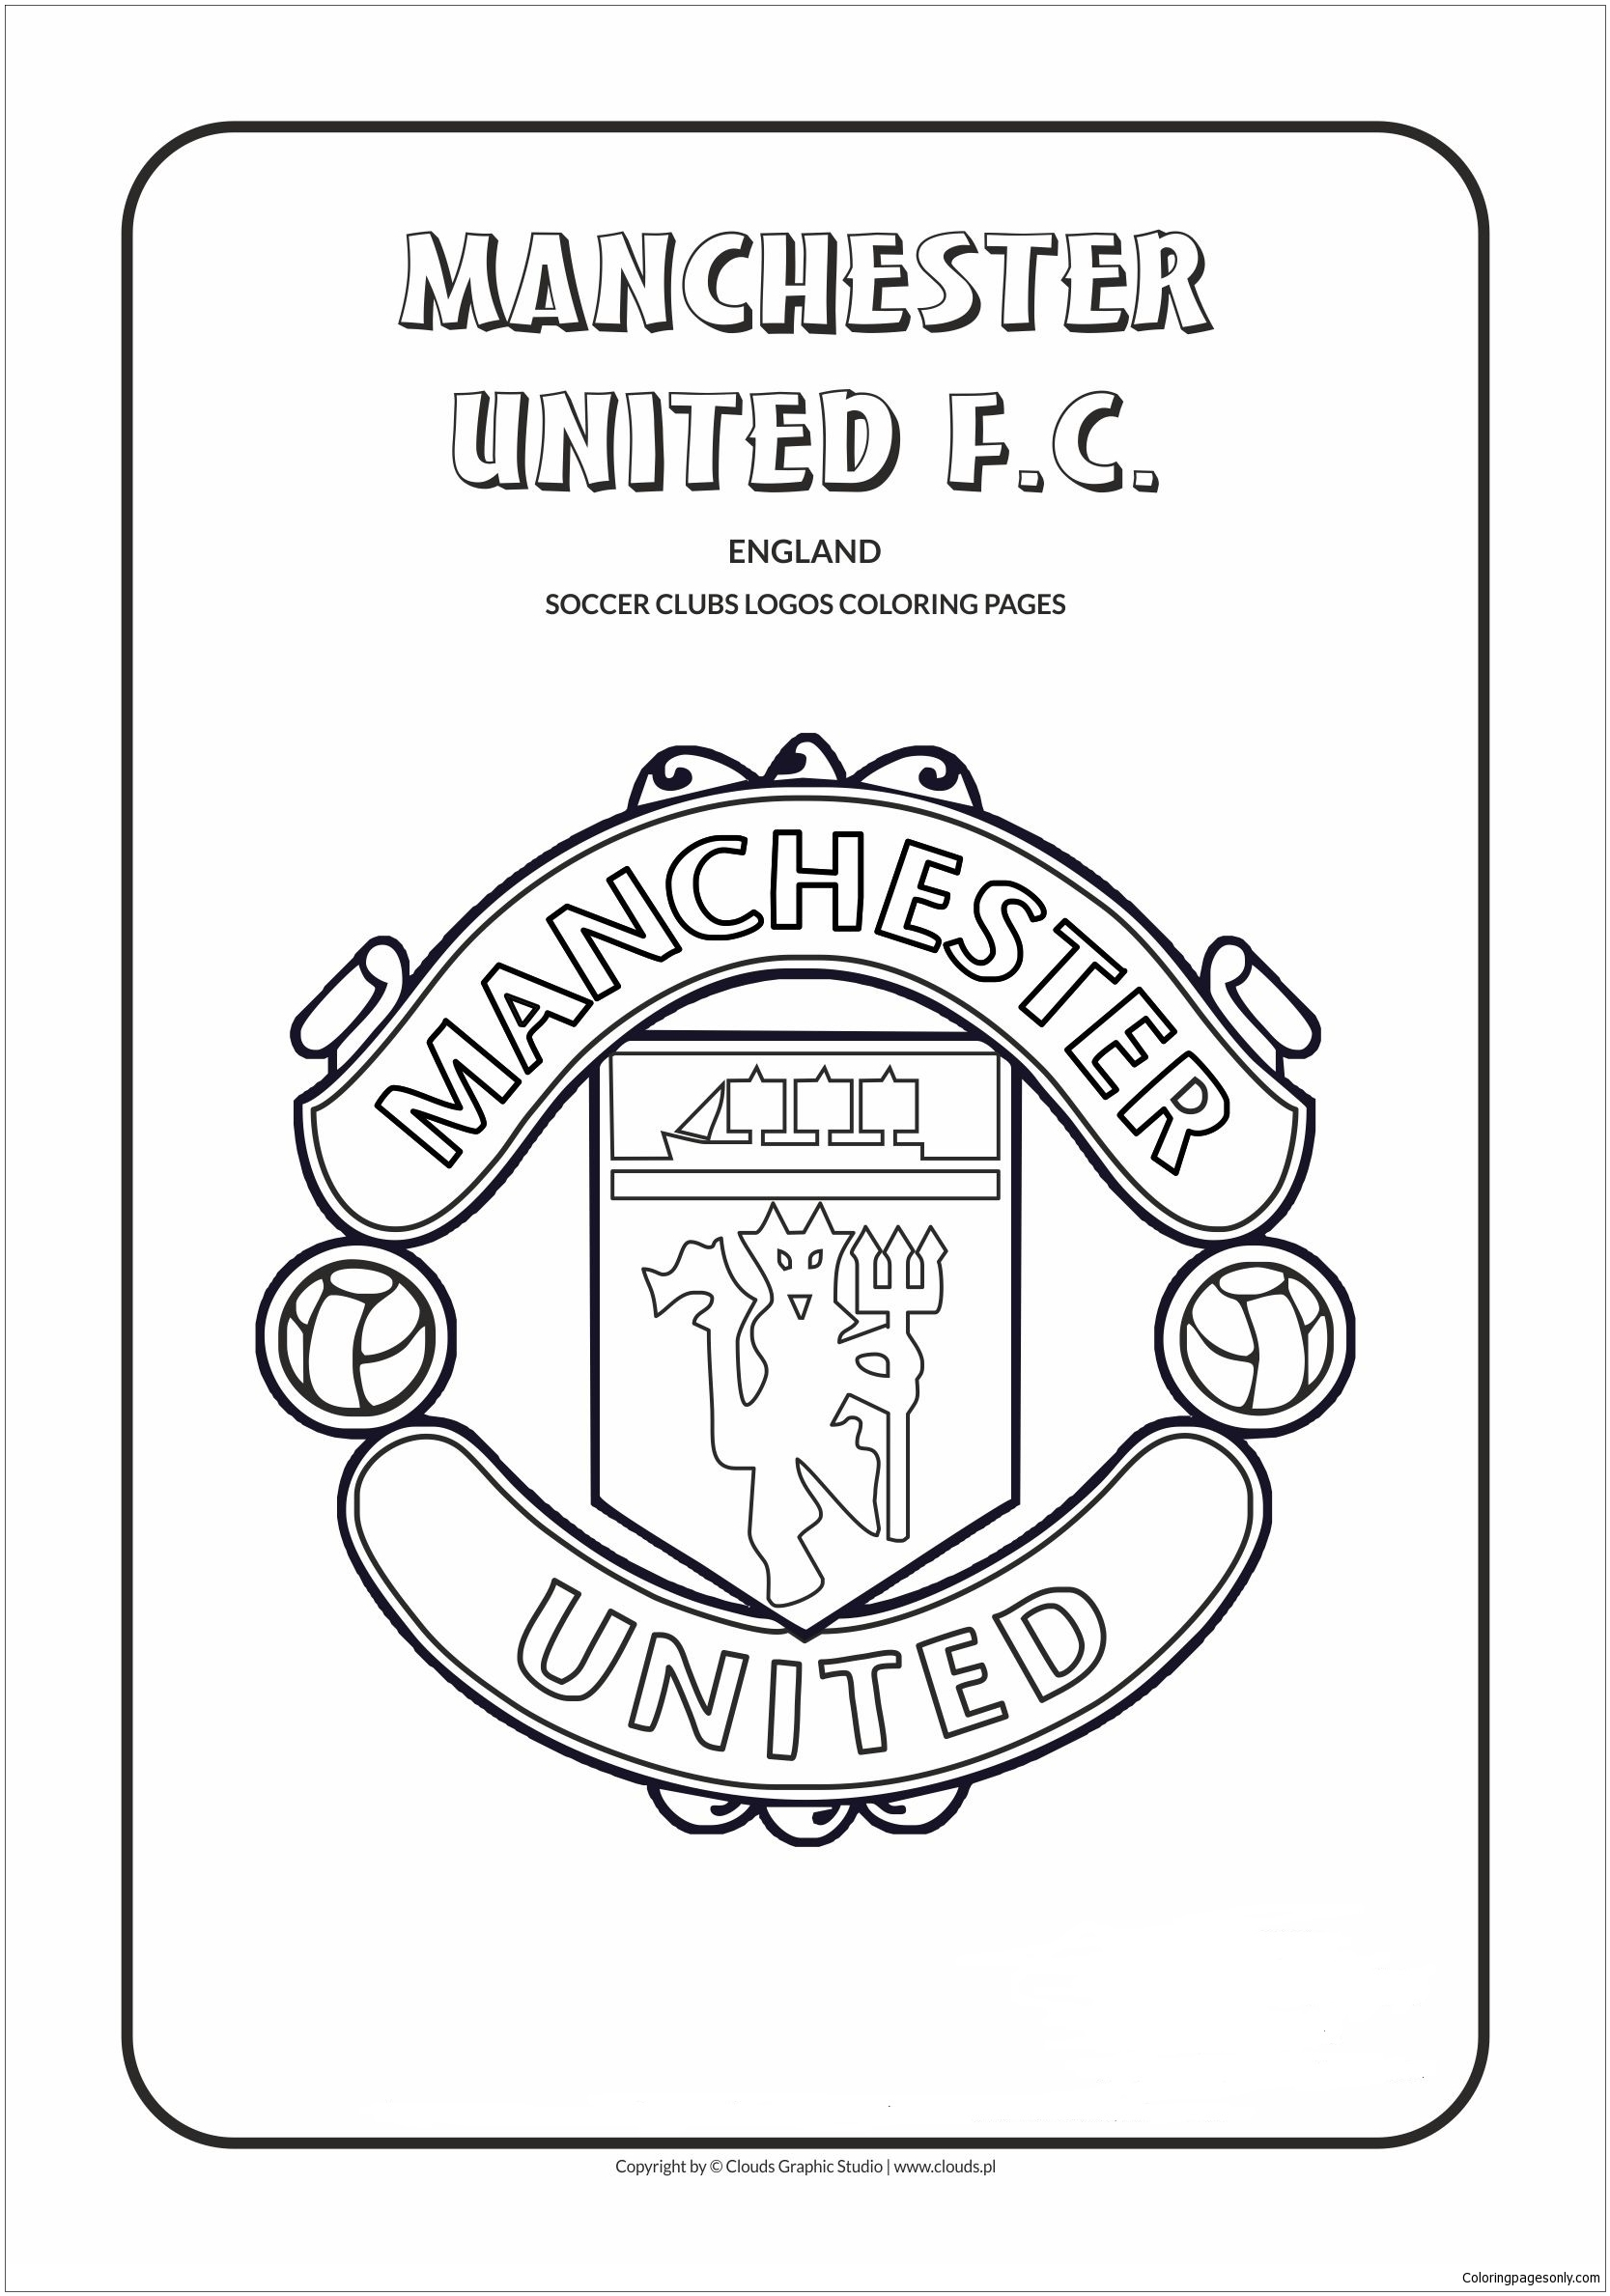 Manchester United F C Coloring Pages England Premier League Team Logos Coloring Pages Coloring Pages For Kids And Adults